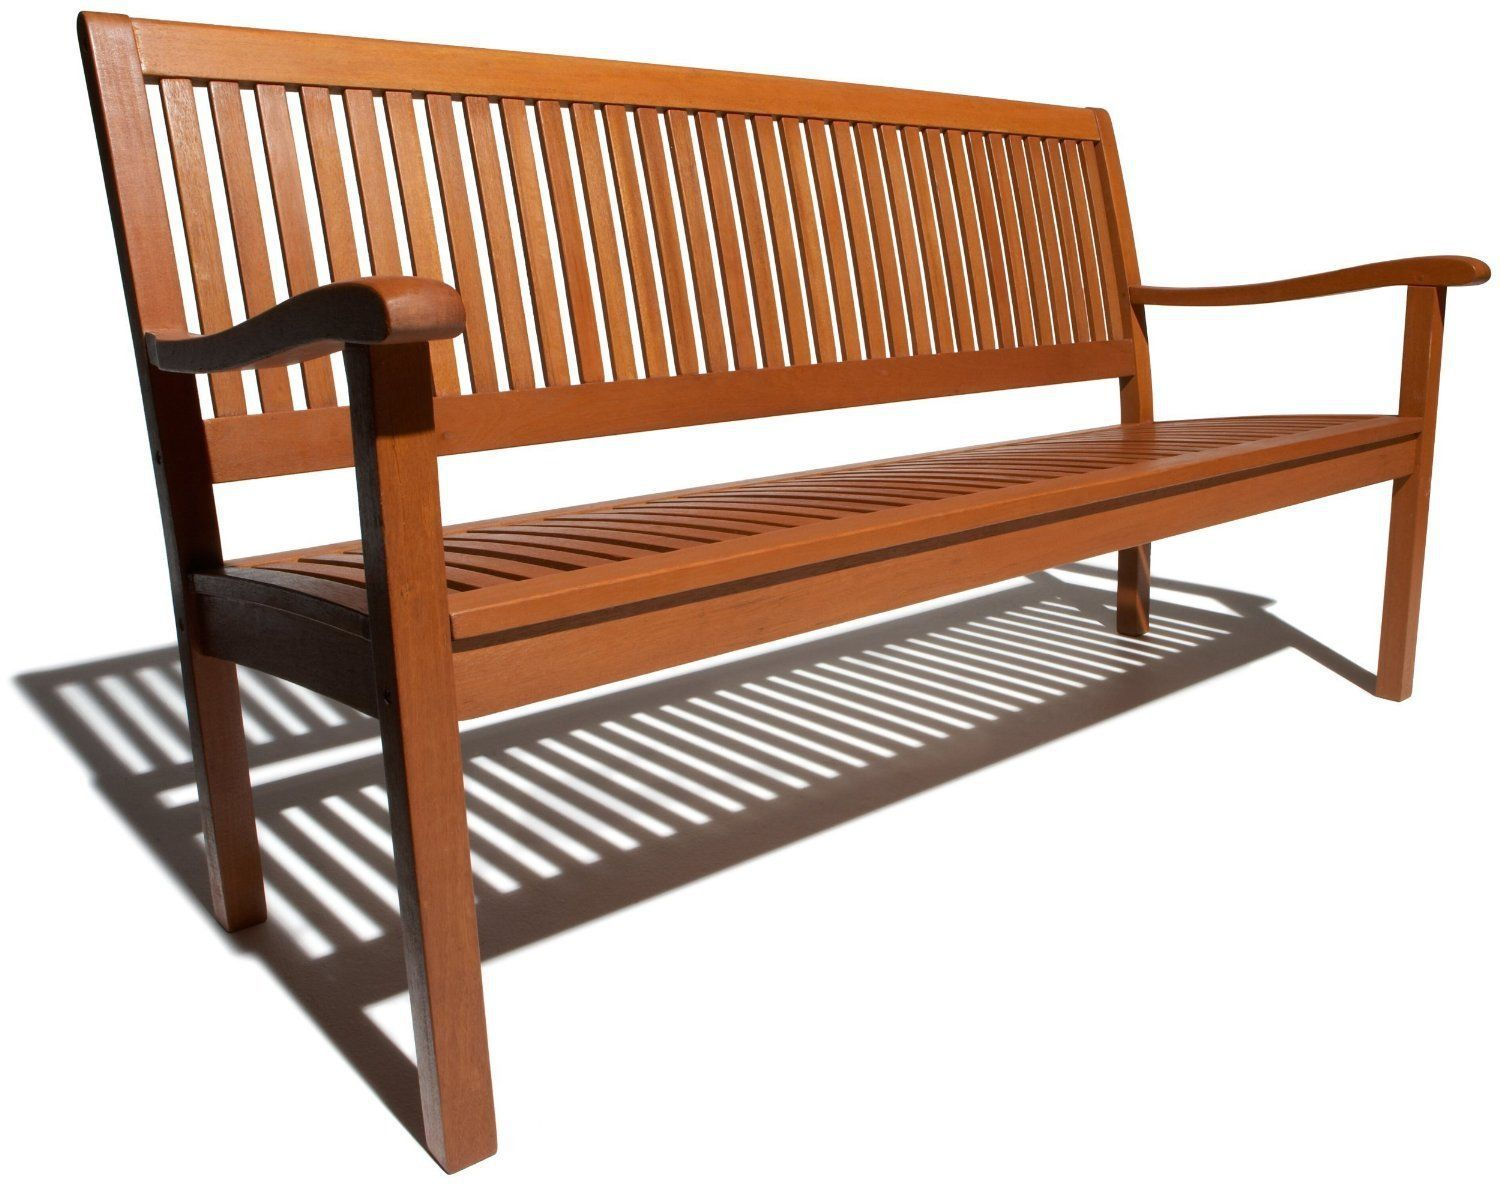 Marvelous photograph of Outdoor Garden Bench Wood 2 Seat Chair Home Furniture Porch Deck Patio  with #AE511D color and 1500x1184 pixels